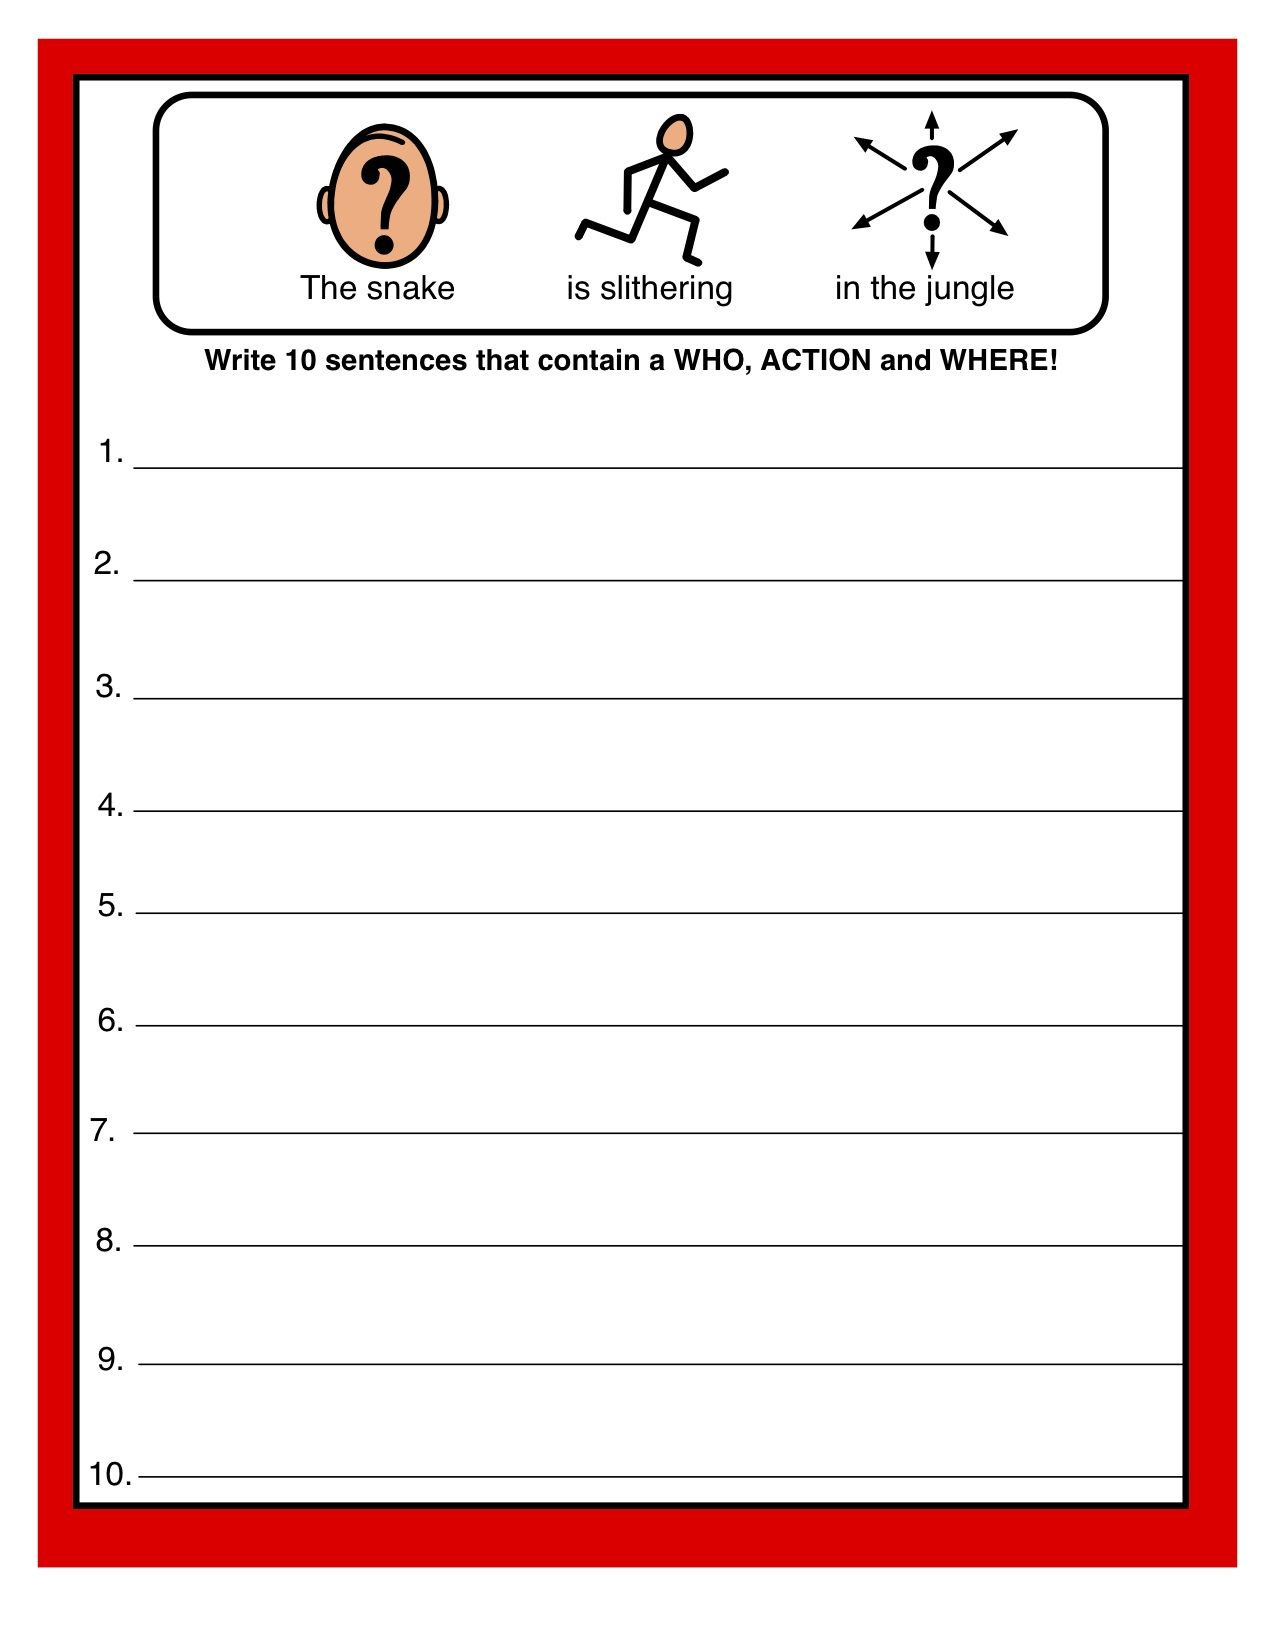 Simple Sentence Structure Great Worksheet For Making Complete Sentences From Adventures In